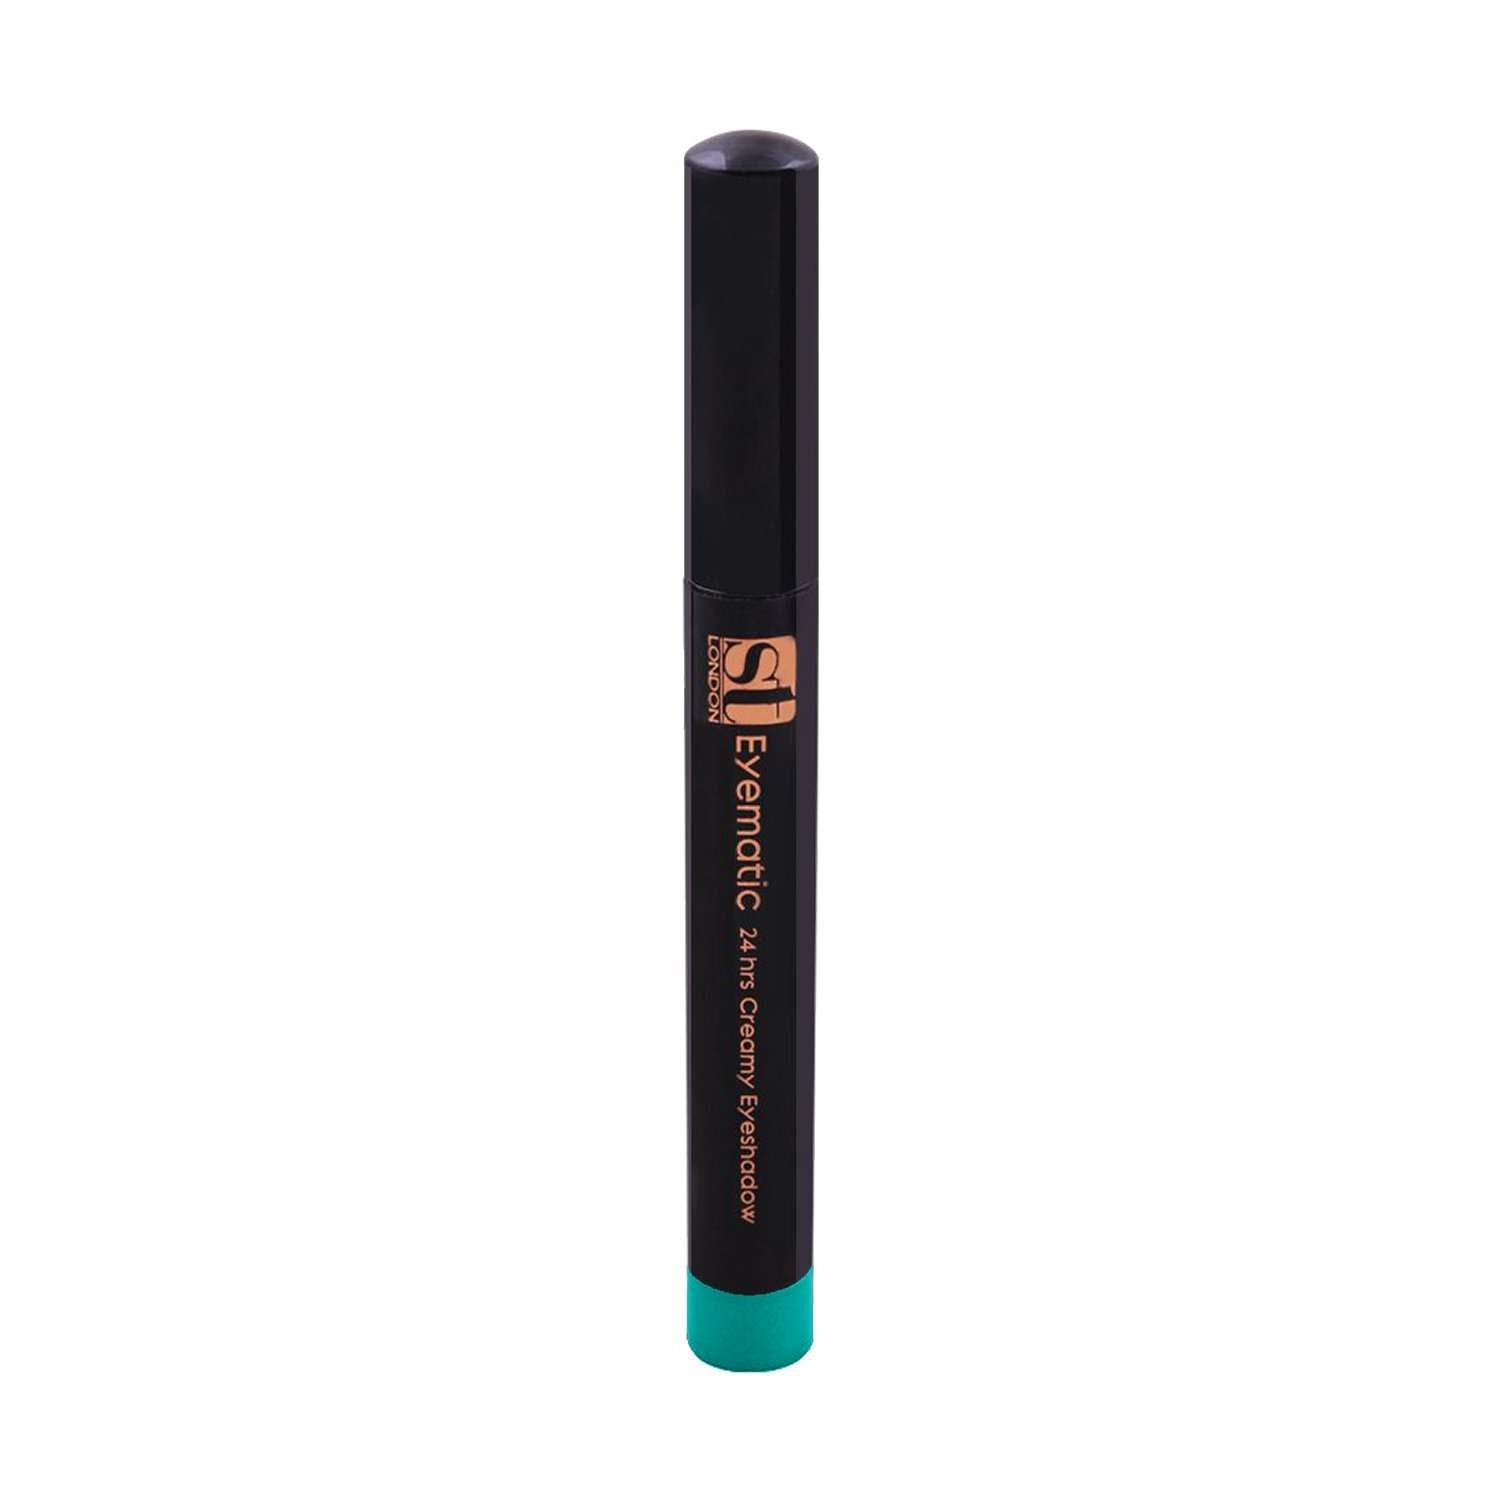 Eyematic 24hrs Creamy Eye Shadow - Torquoise Blue